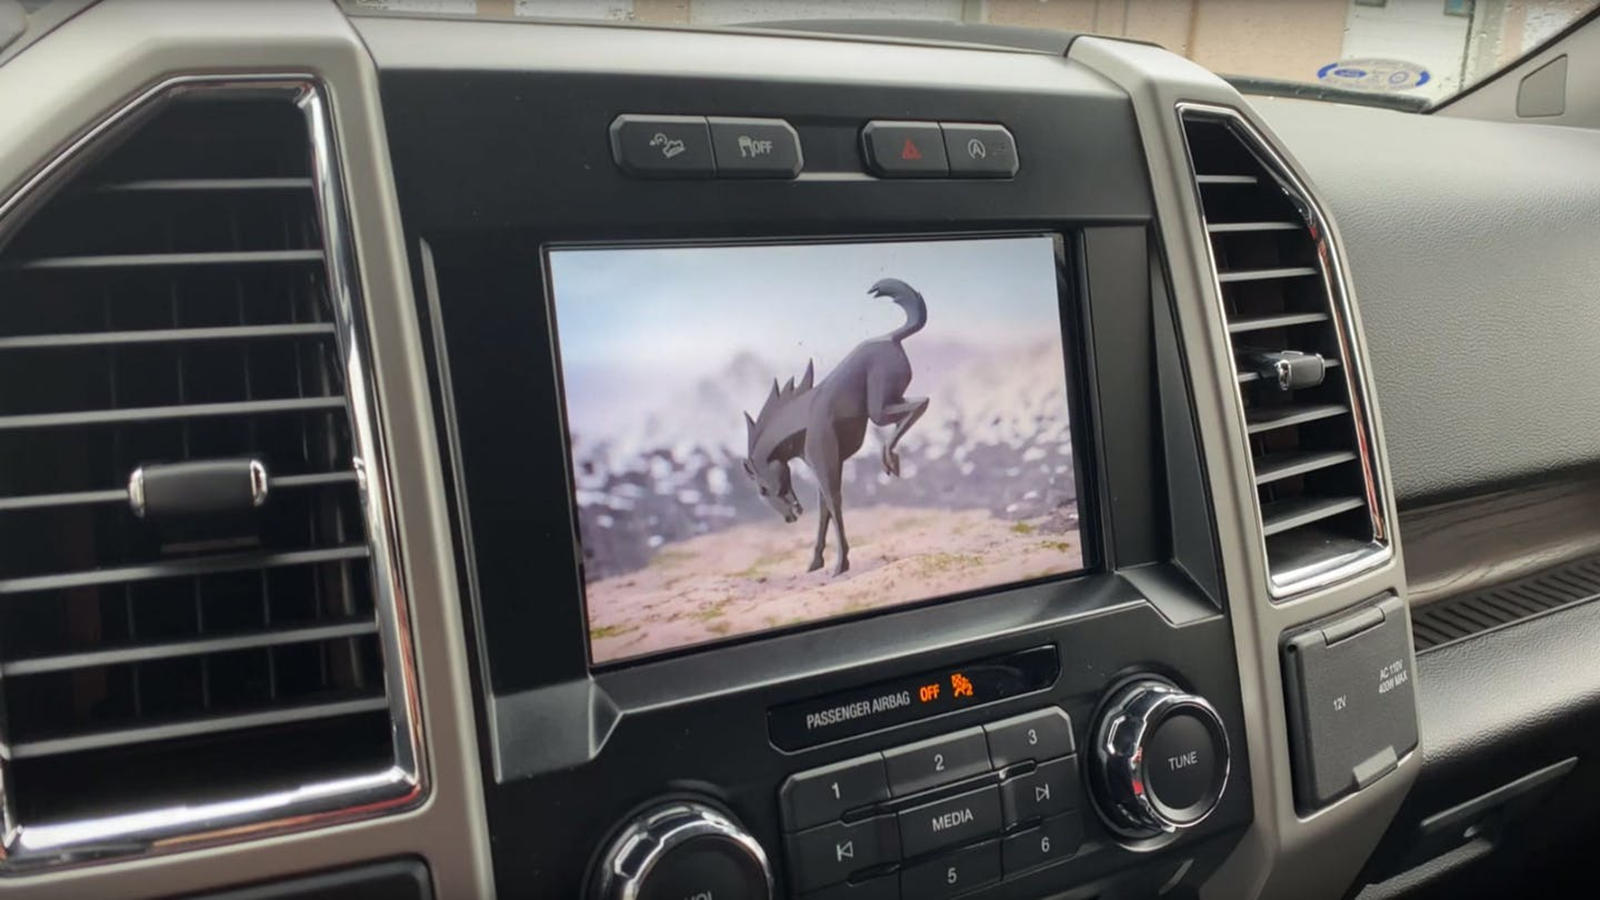 2021 Ford Bronco Interior With Large Screen